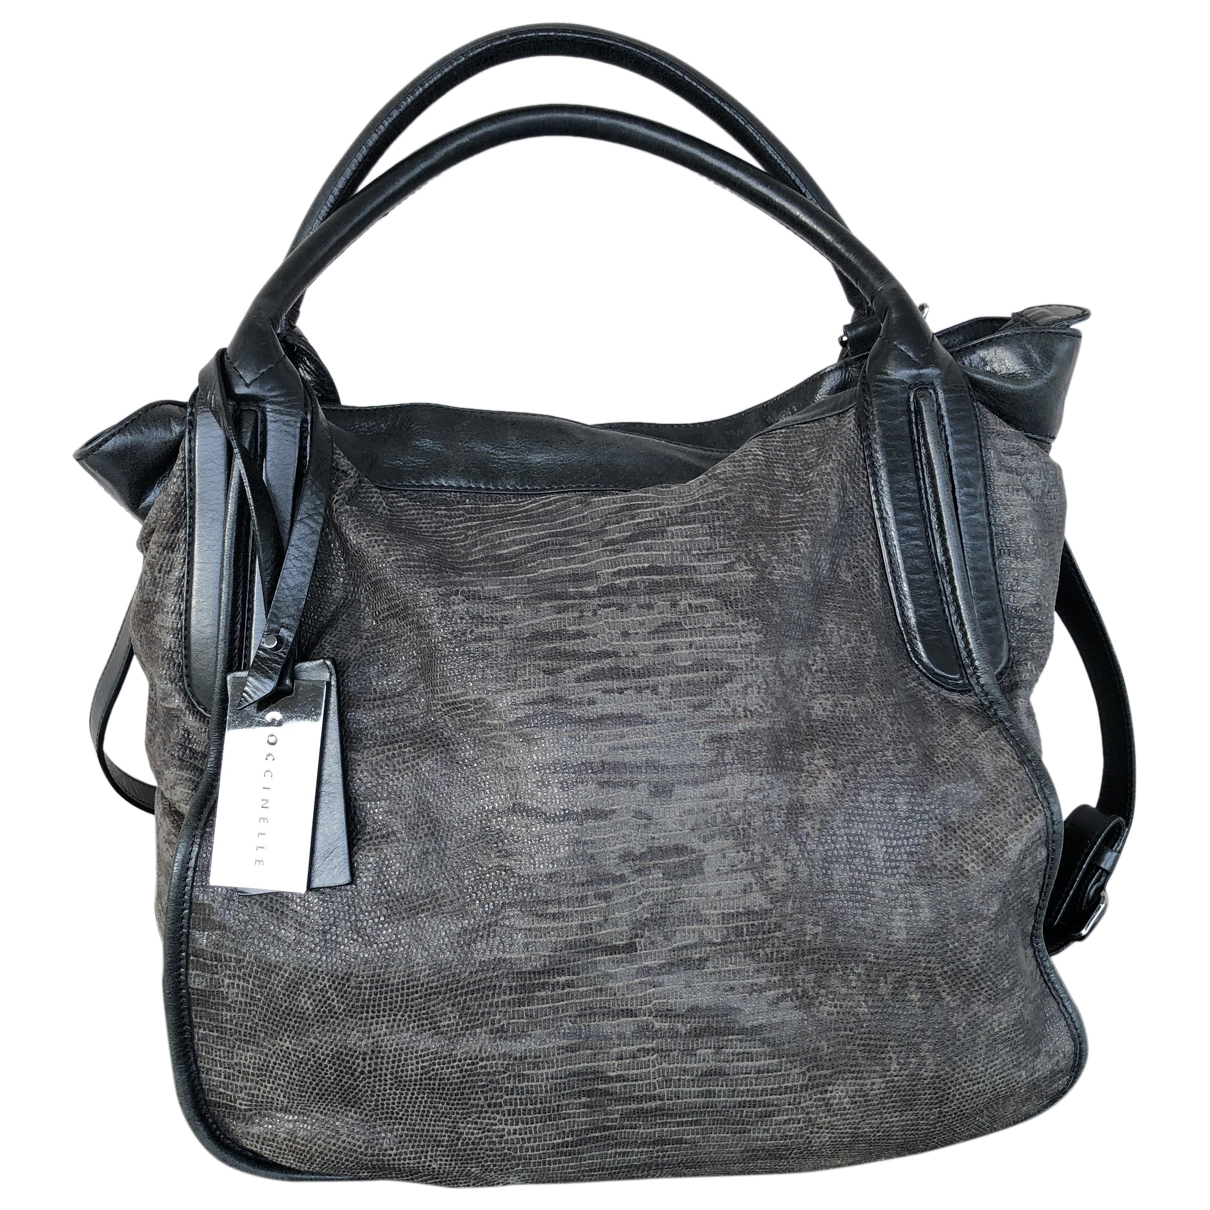 Coccinelle \N Grey Leather handbag for Women \N